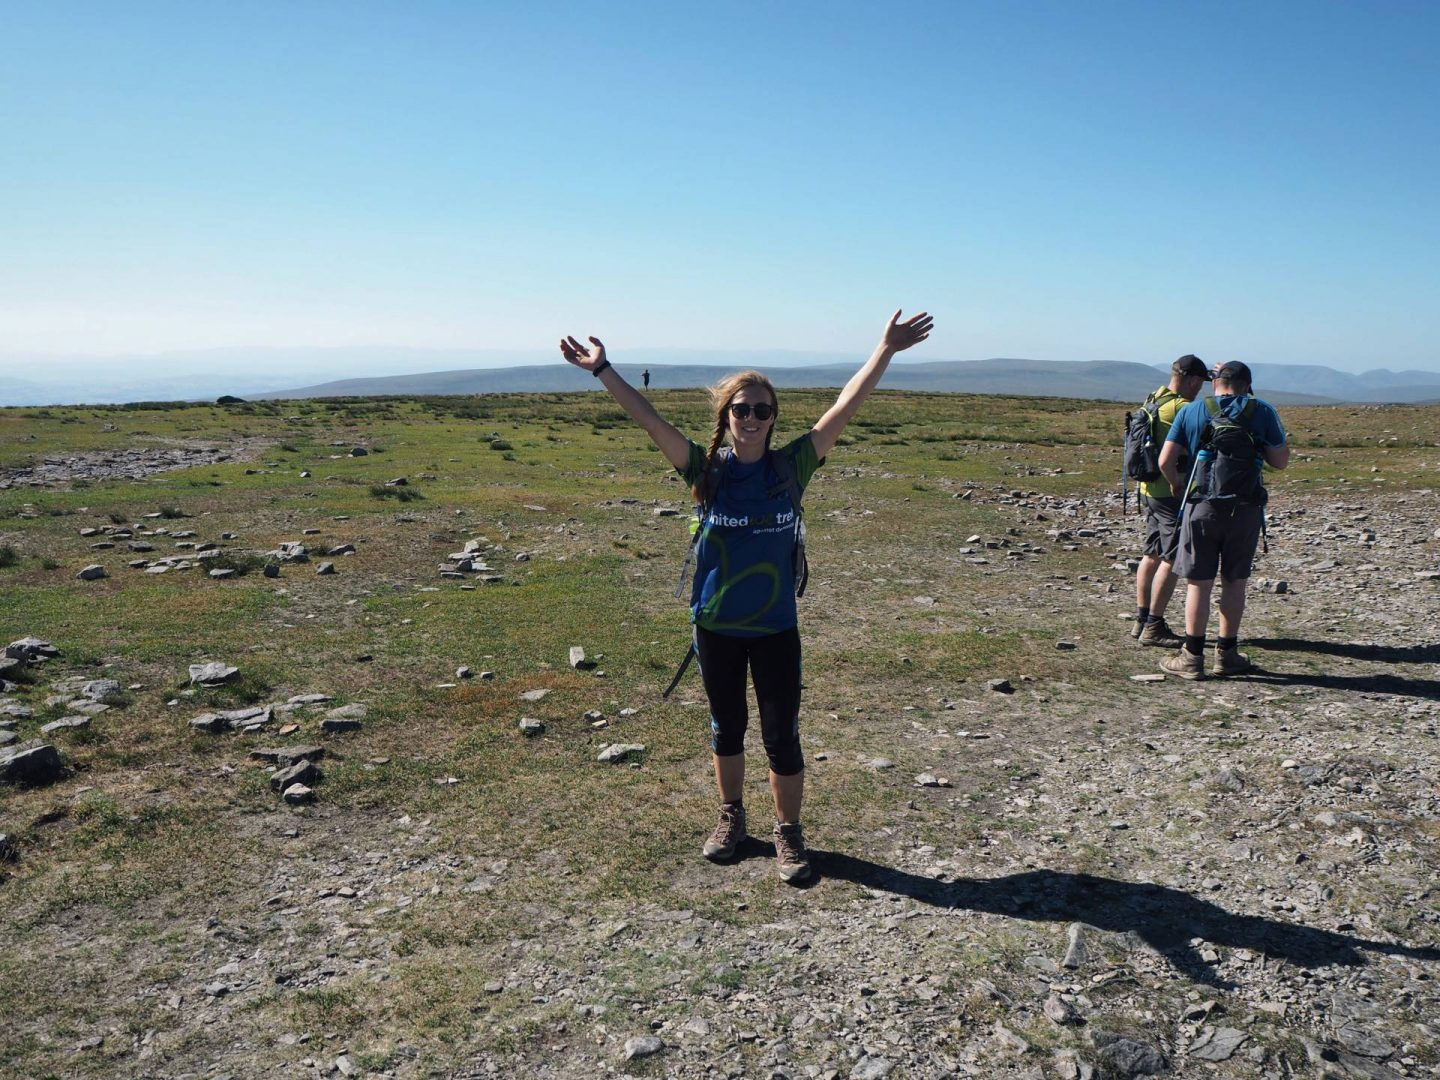 Reaching the top of Ingleborough